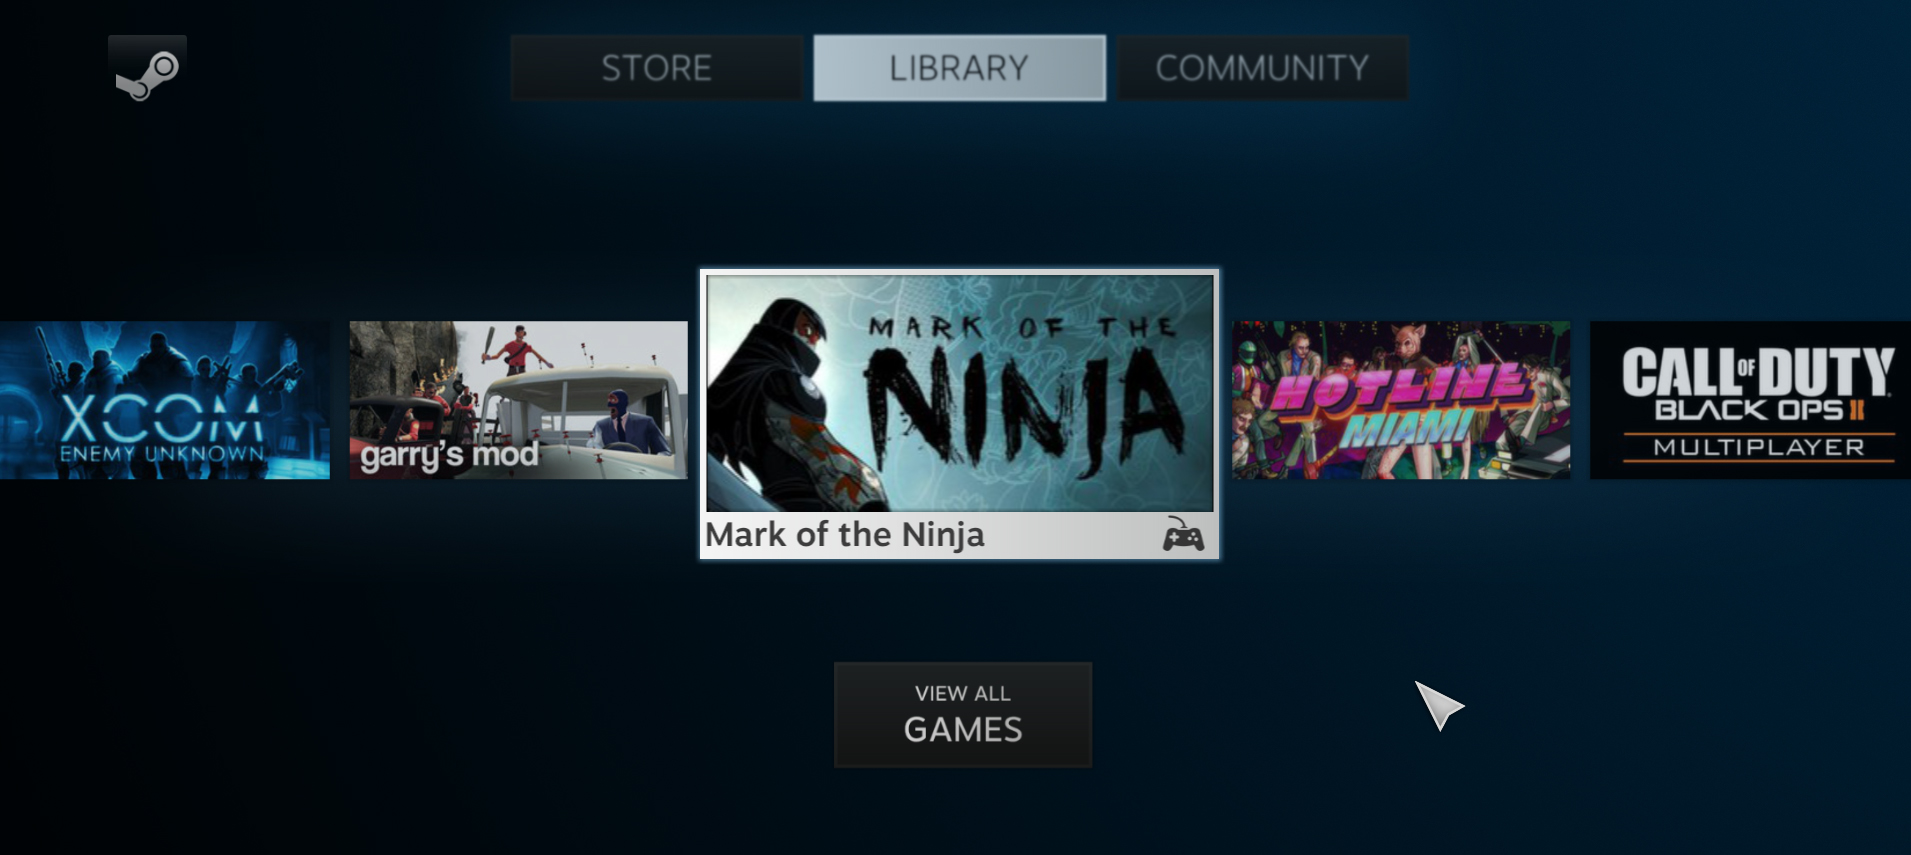 Steam Big Picture mode launches with controller-friendly